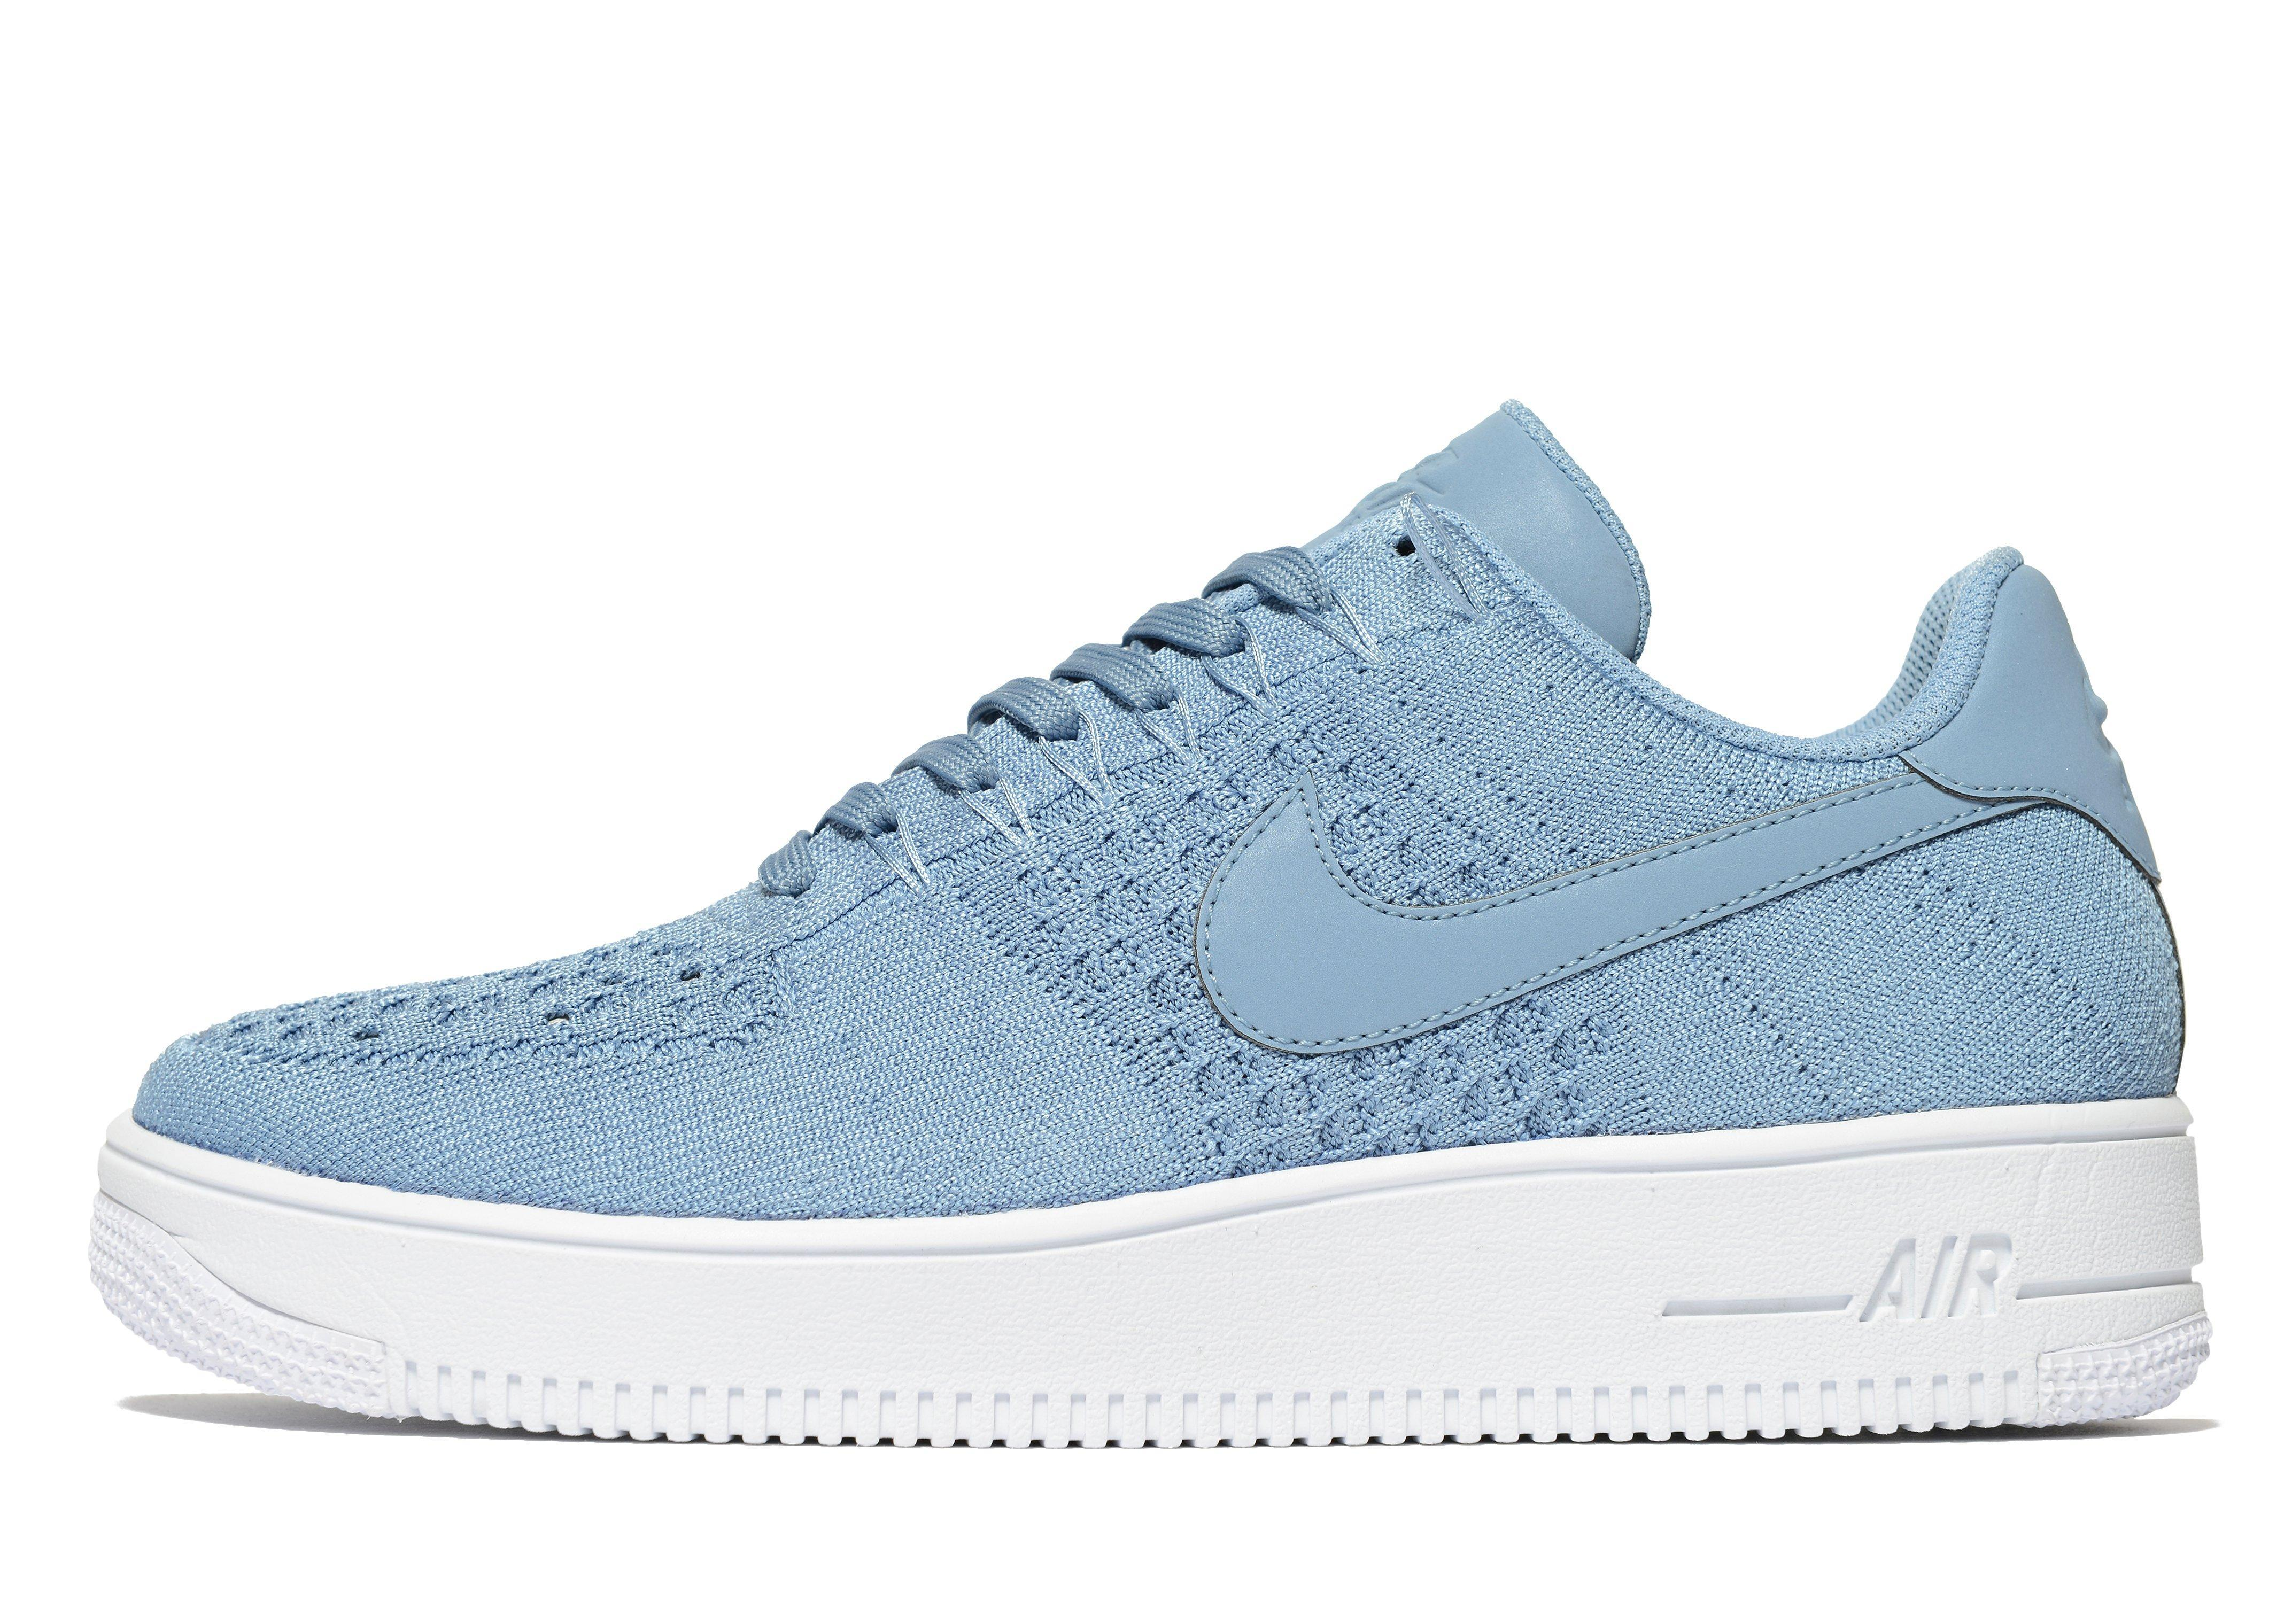 promo code 3d4af 2e6e1 Lyst - Nike Air Force 1 Flyknit in Blue for Men